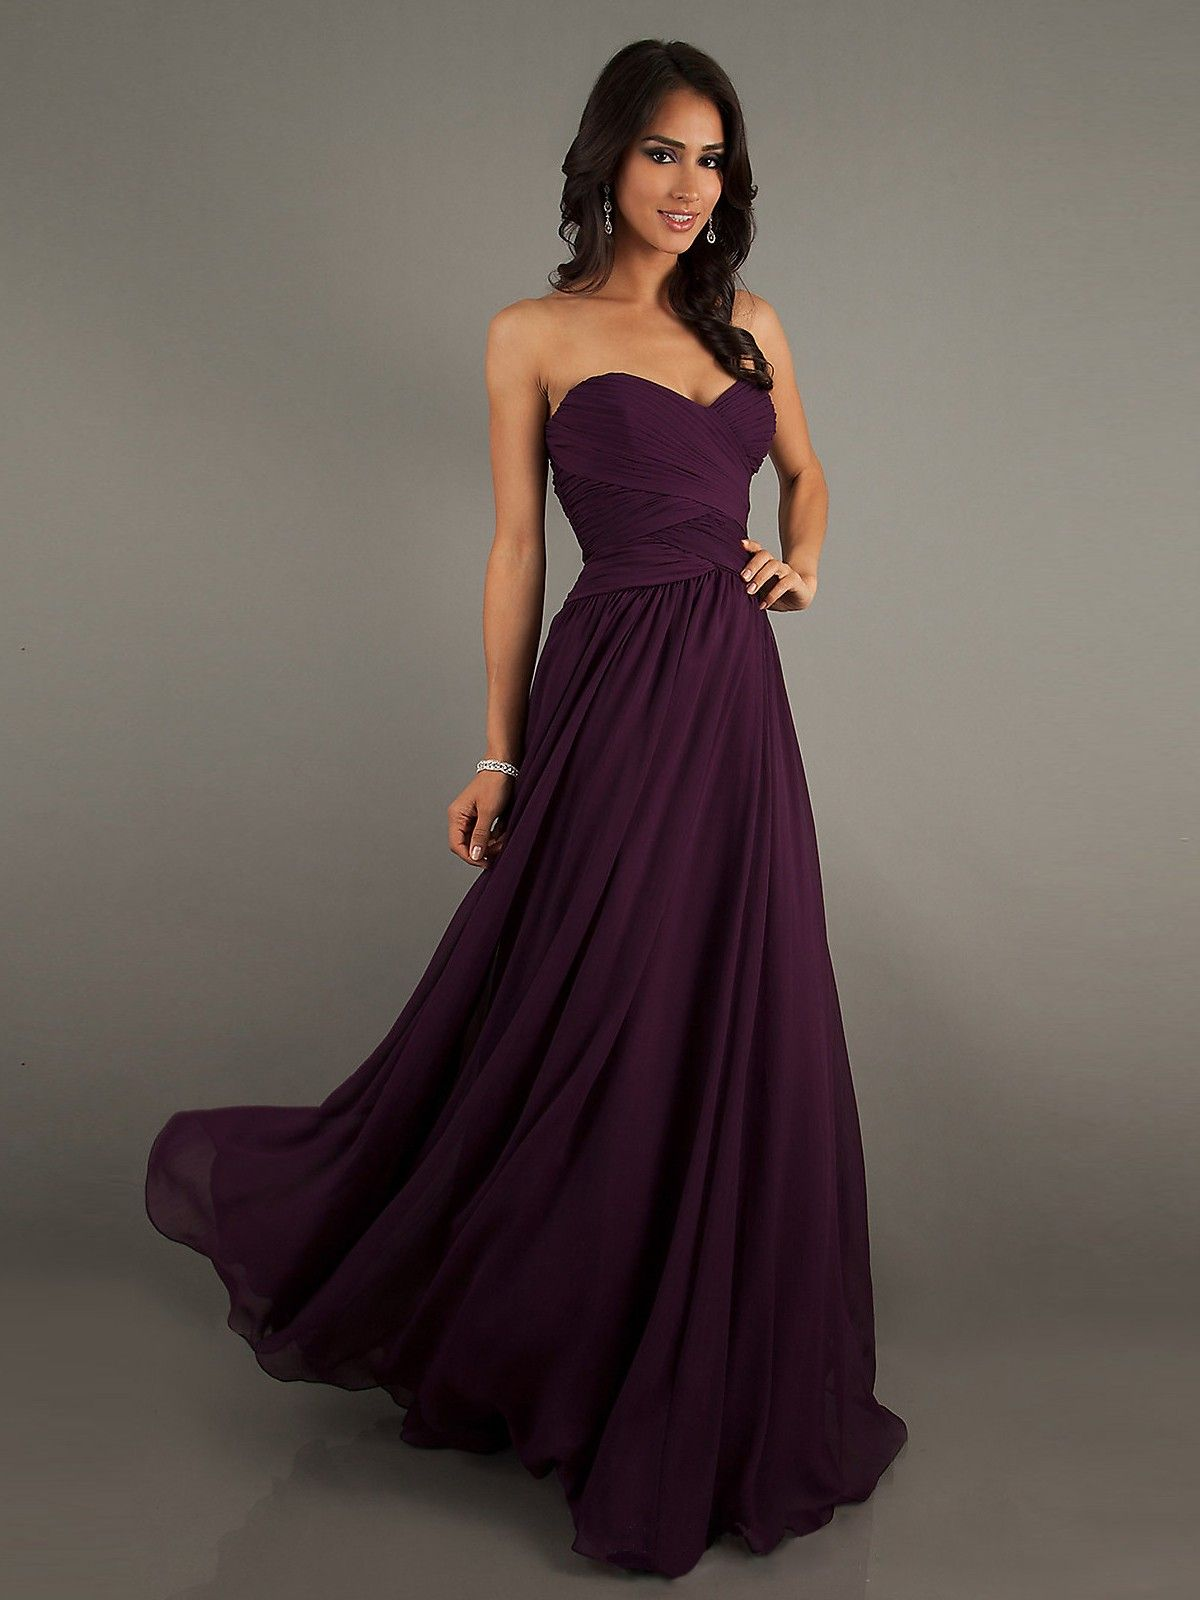 2016 New Styles Via Promwill Purple Long Bridesmaid Dress Up To 80 Off